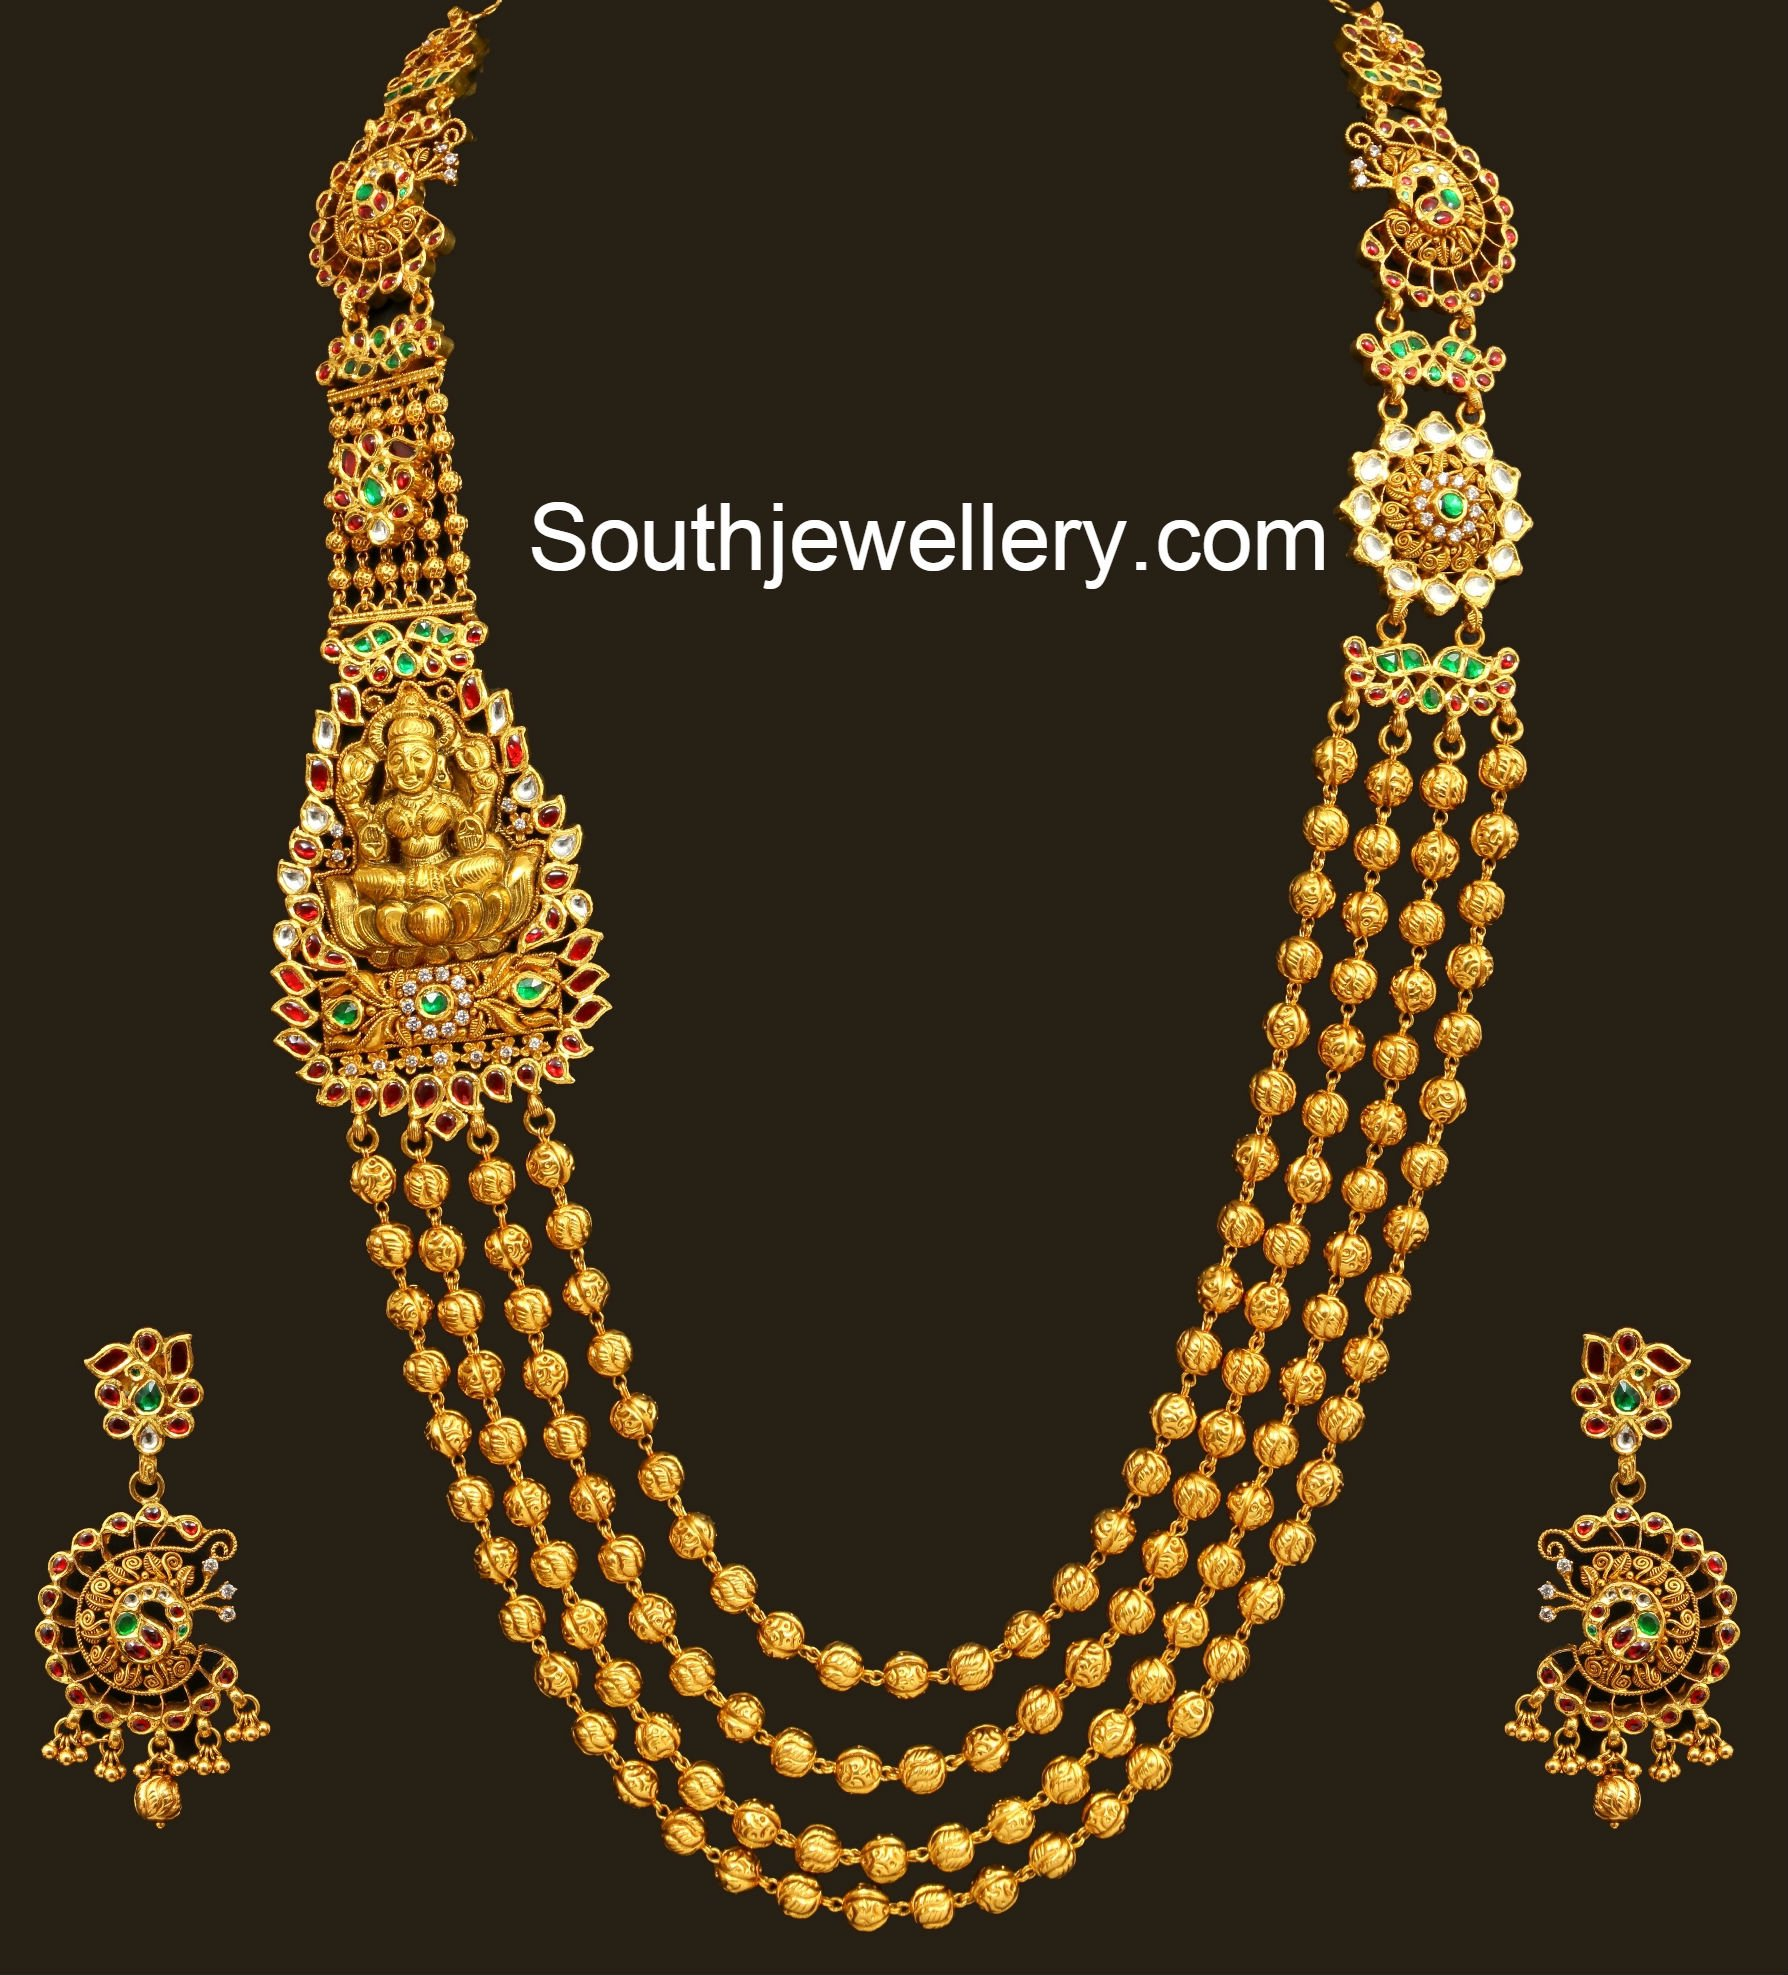 Gold Long Chain Models Latest Jewelry Designs Jewellery